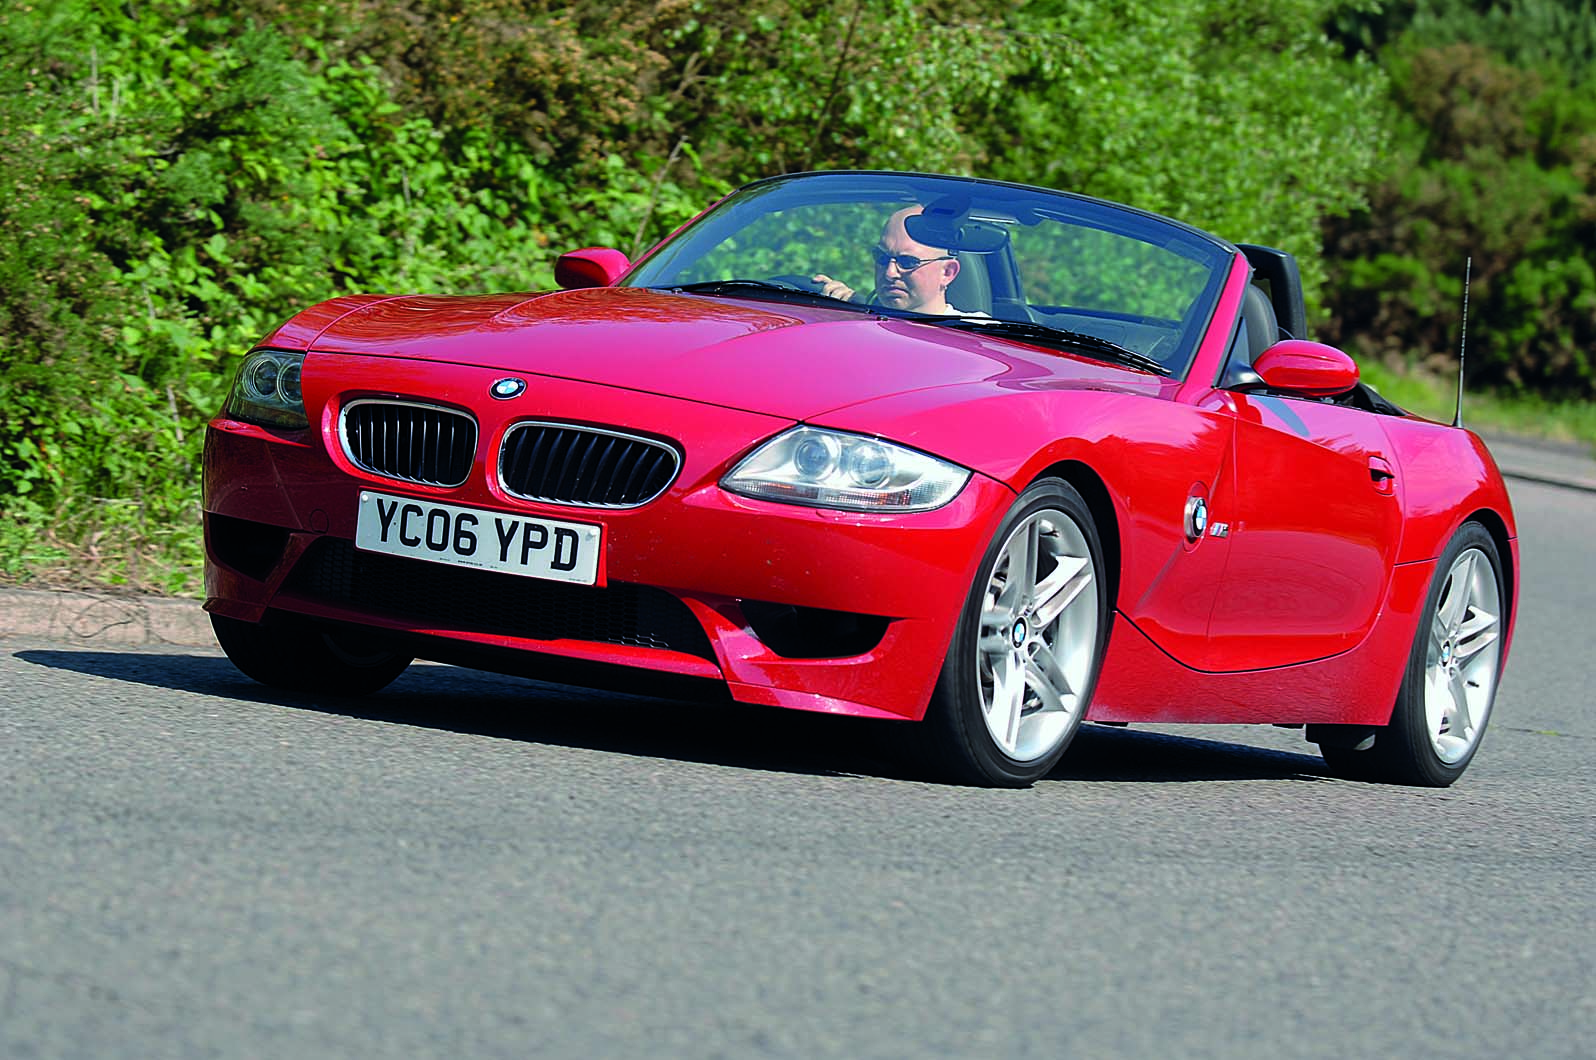 Used car buying guide: BMW Z4 M | Autocar